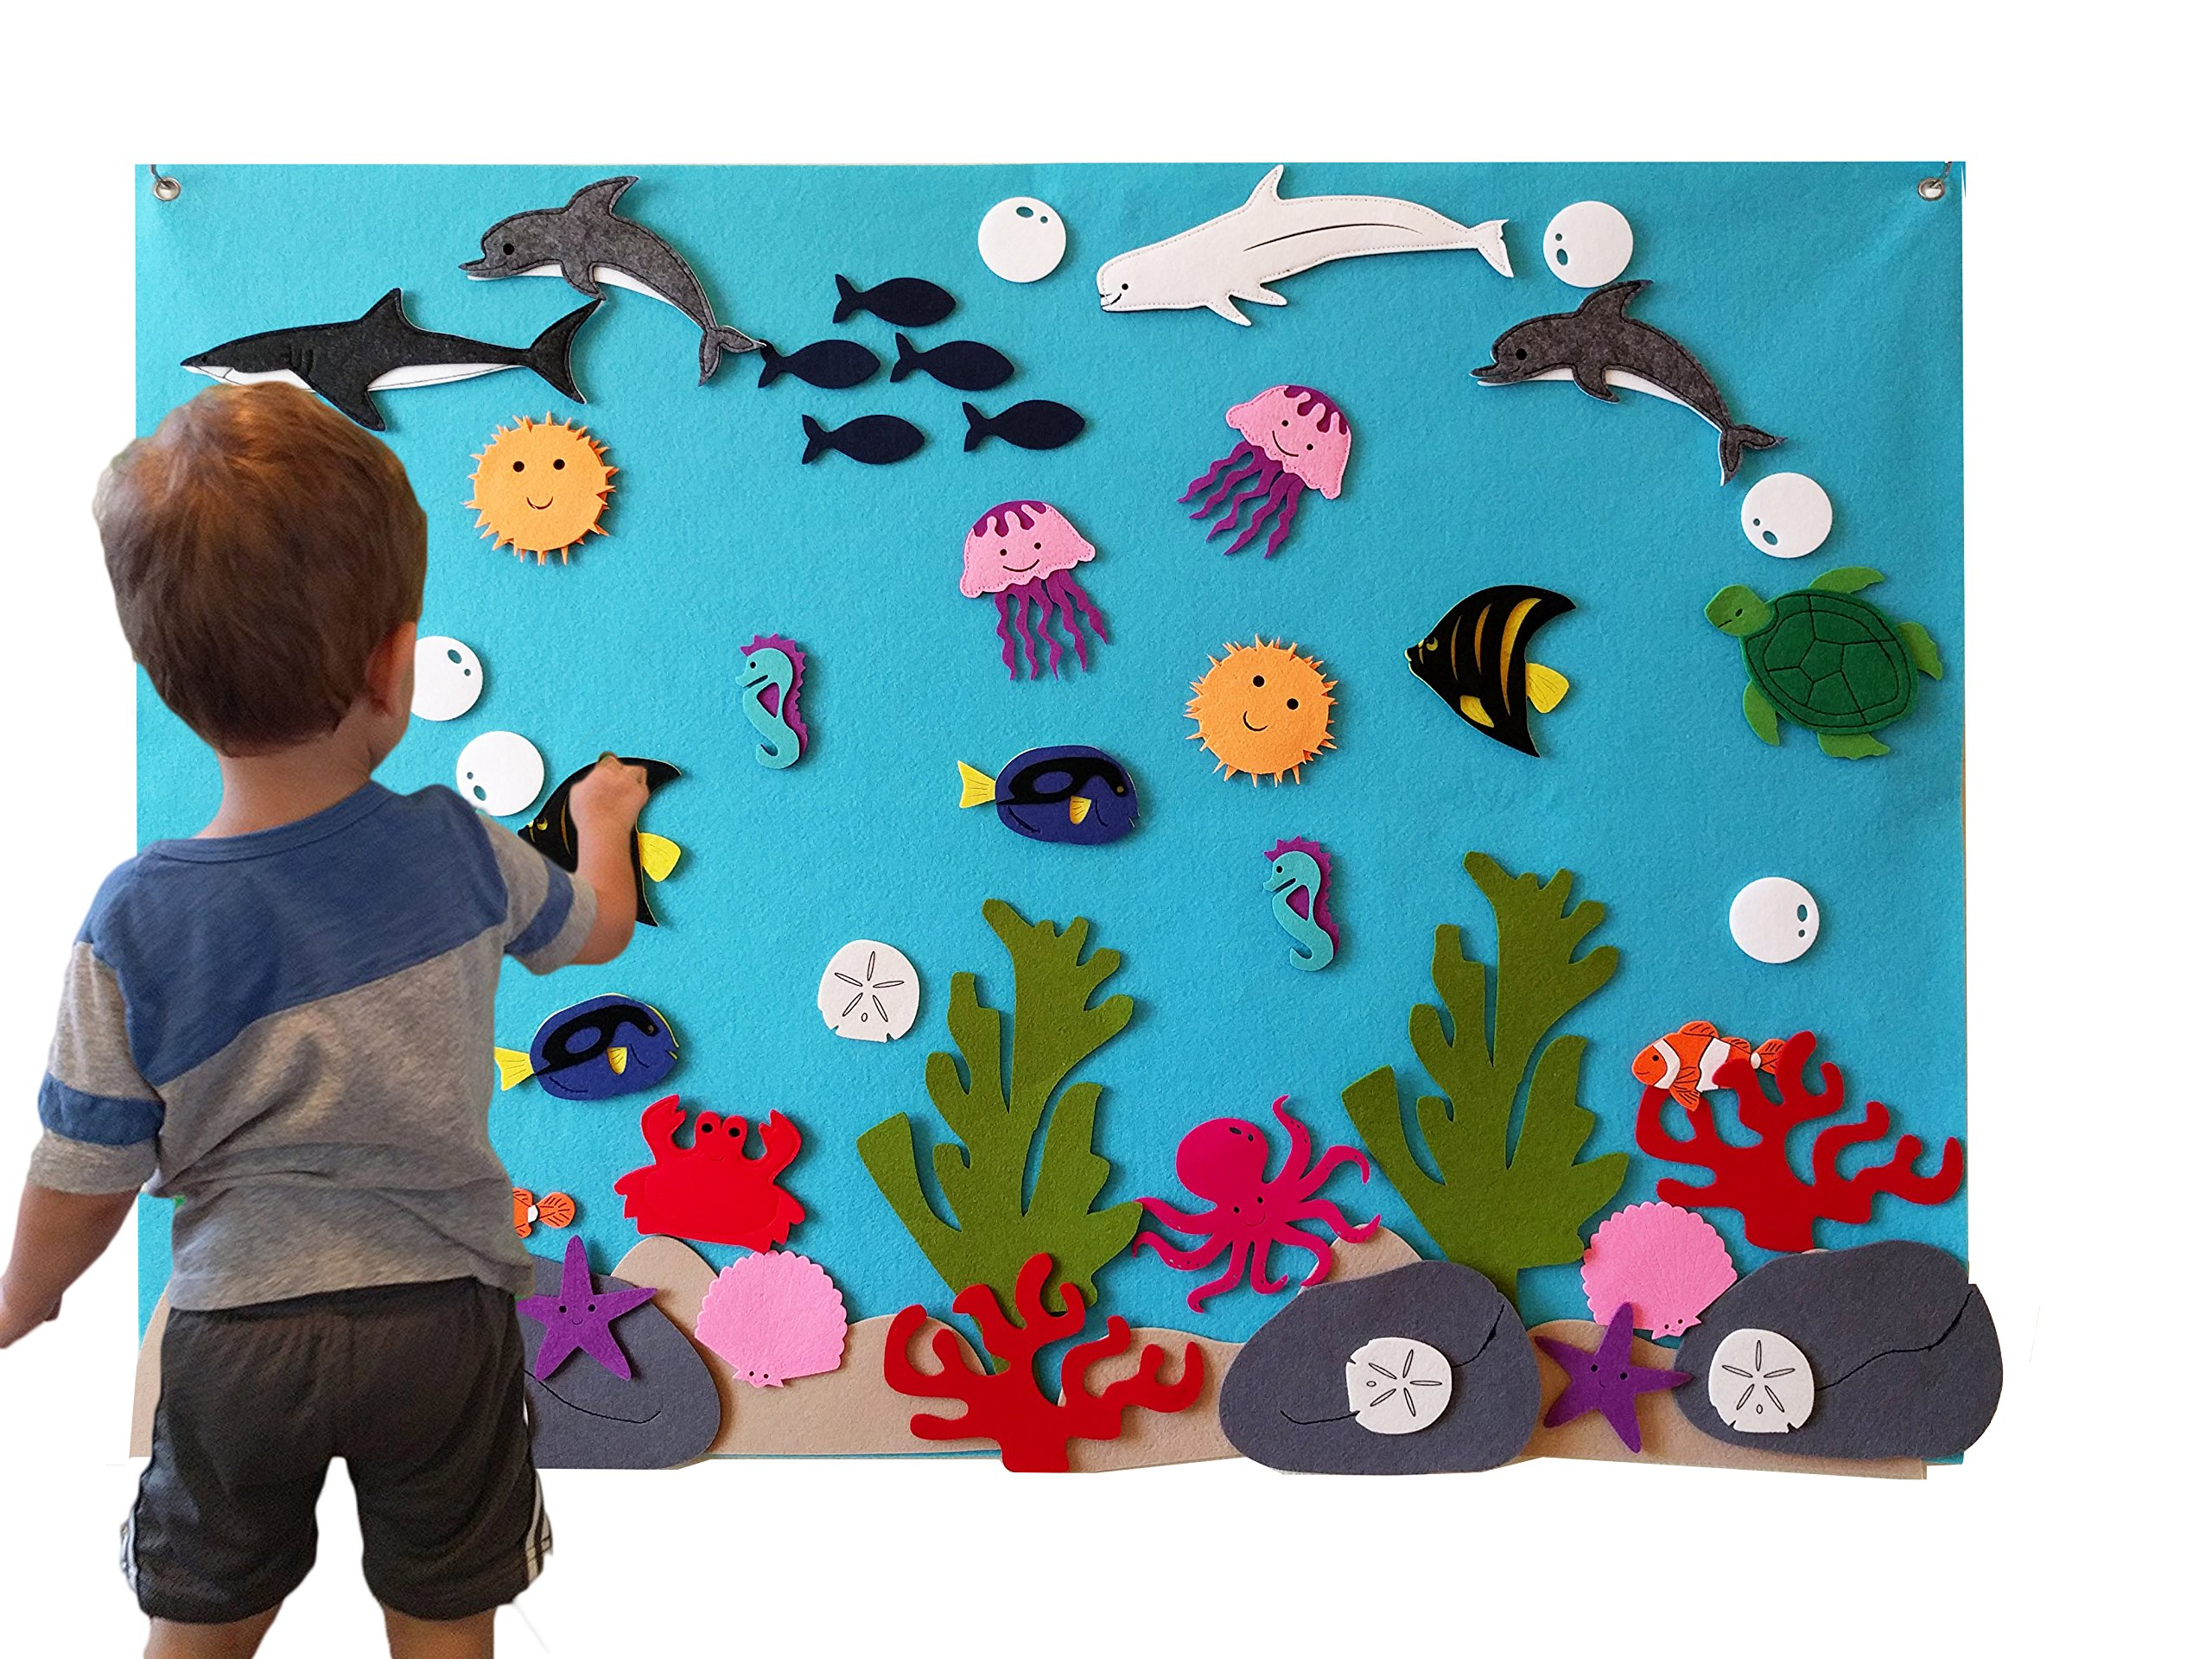 Felt Flannel Board Under The Sea Ocean Aquarium Fish Animals Deluxe Set Giant 3.5 Ft 50+ Pieces Wall Hanging Interactive Play Kit Story DIY Quiet Book No Magnets Needed Montessori Educational Teacher by KTO